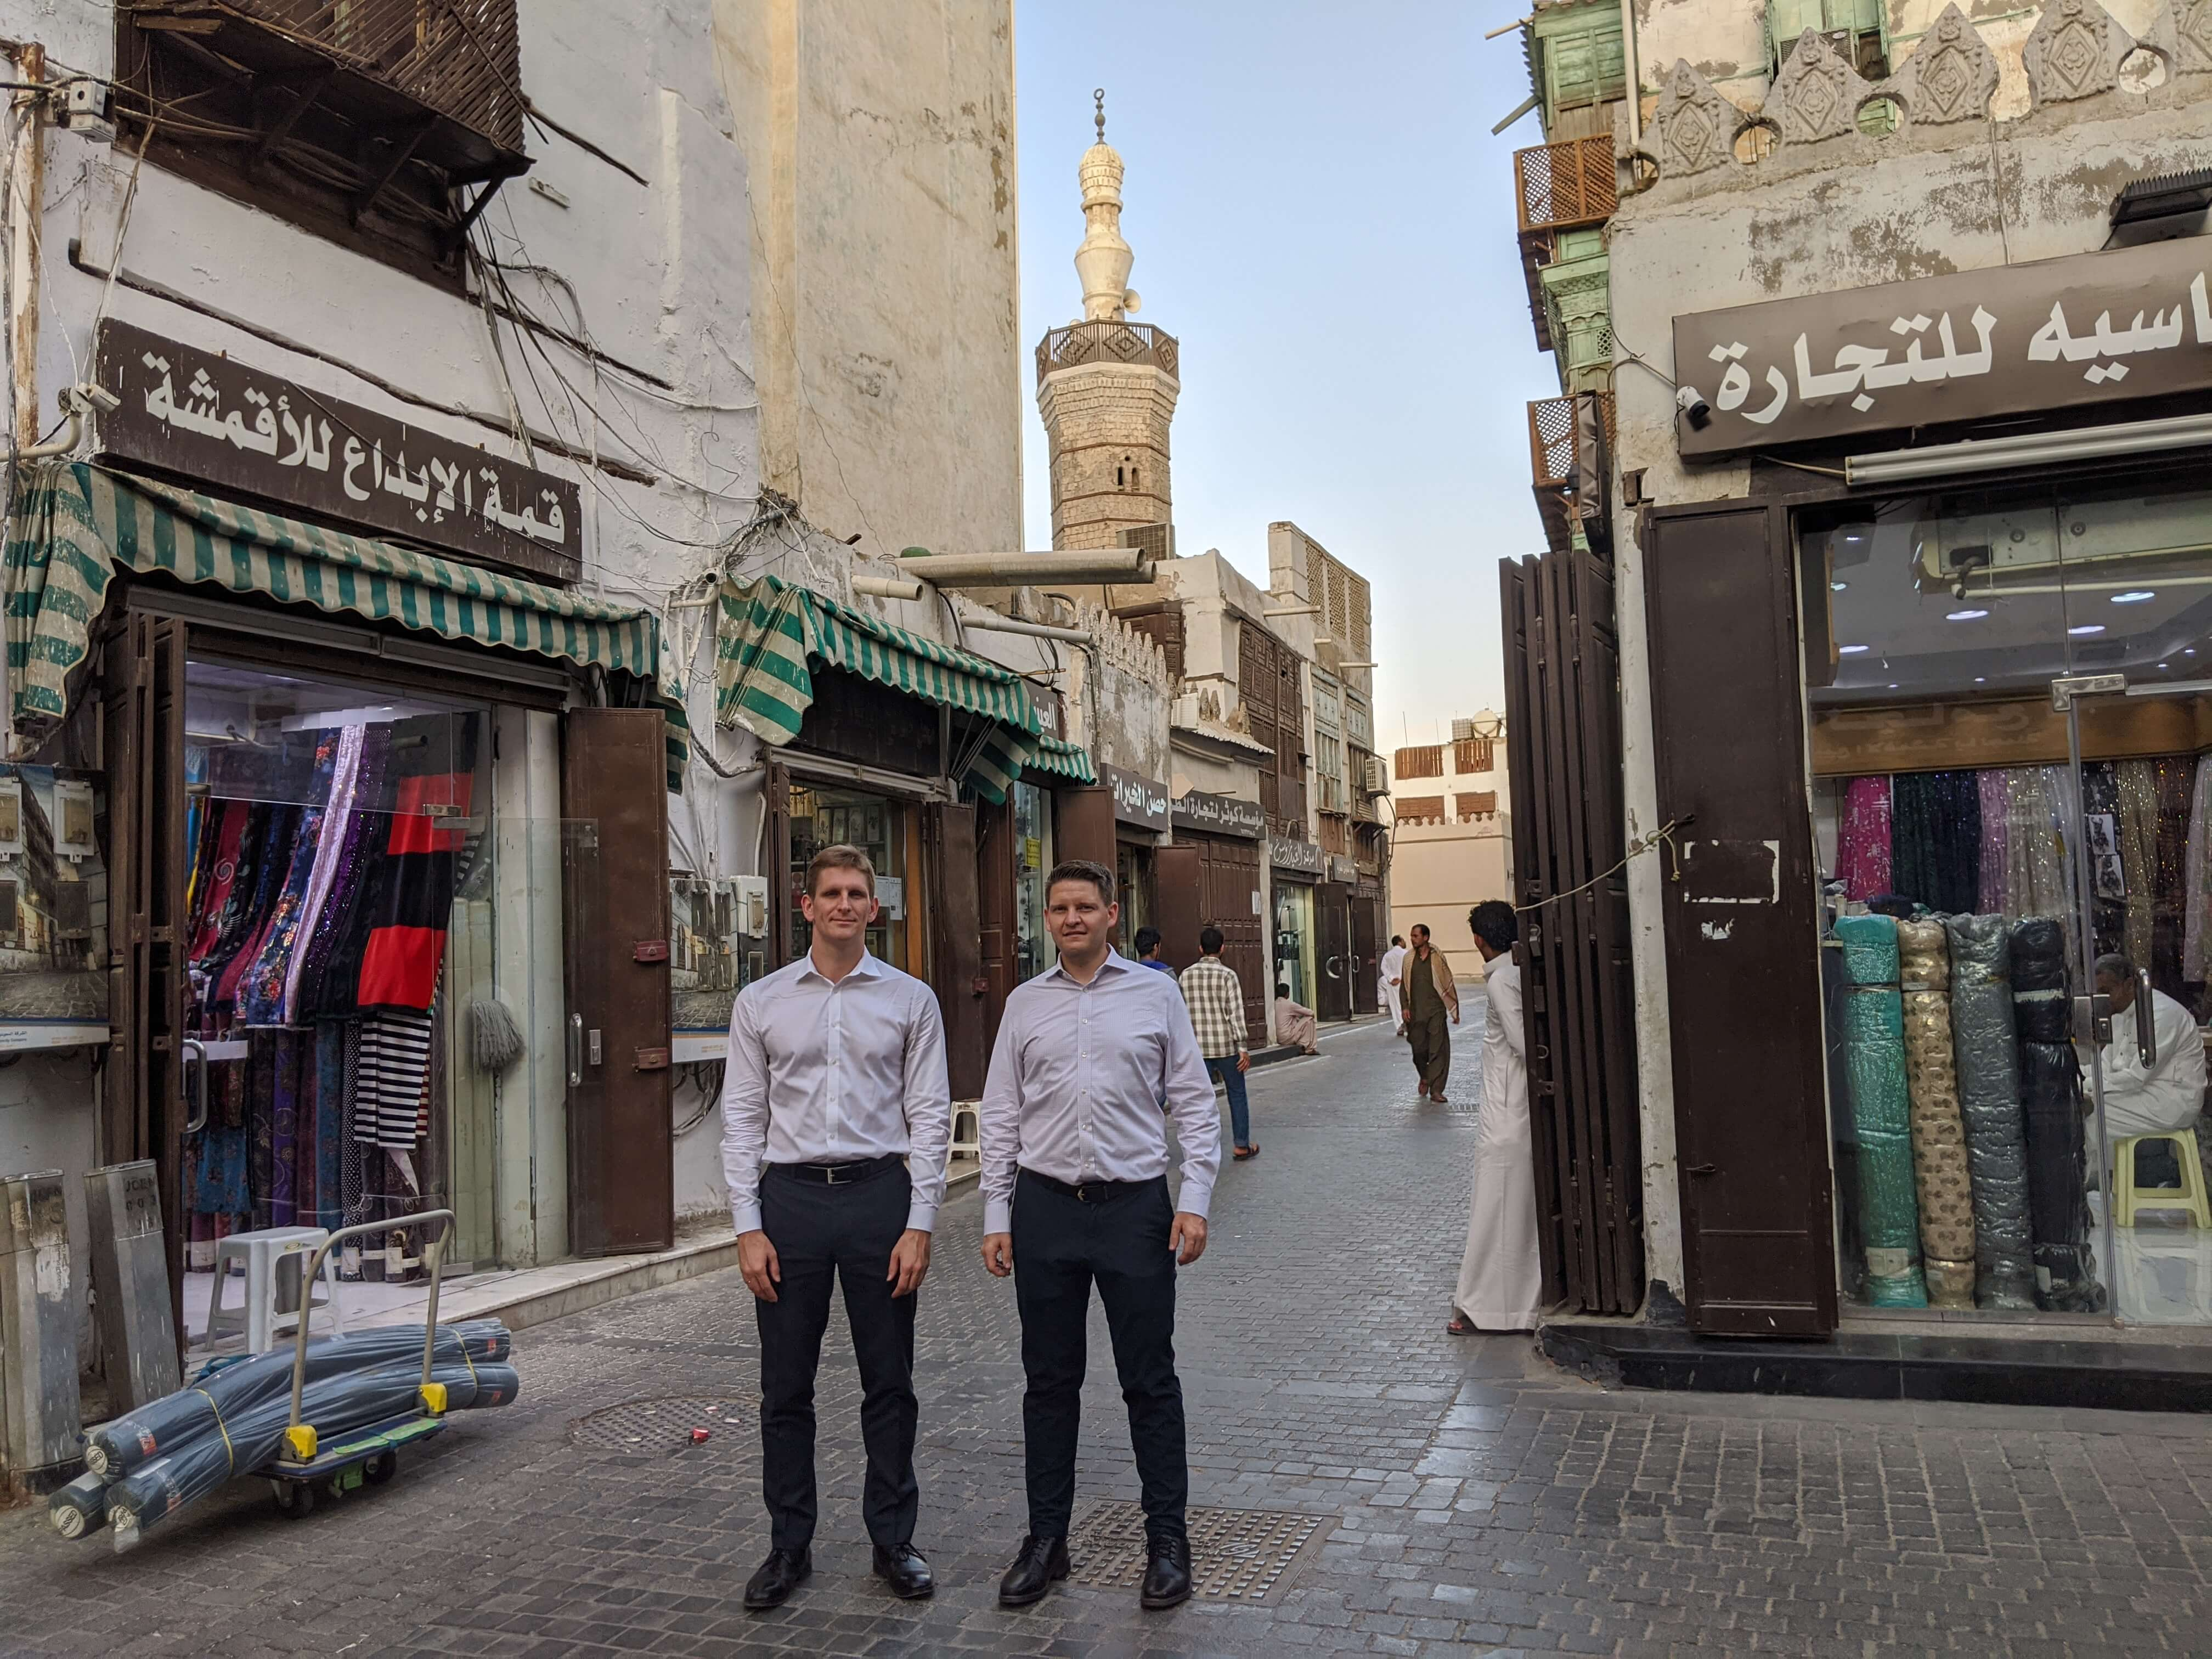 Evli Emerging Frontier fund investment team in Jeddah streets